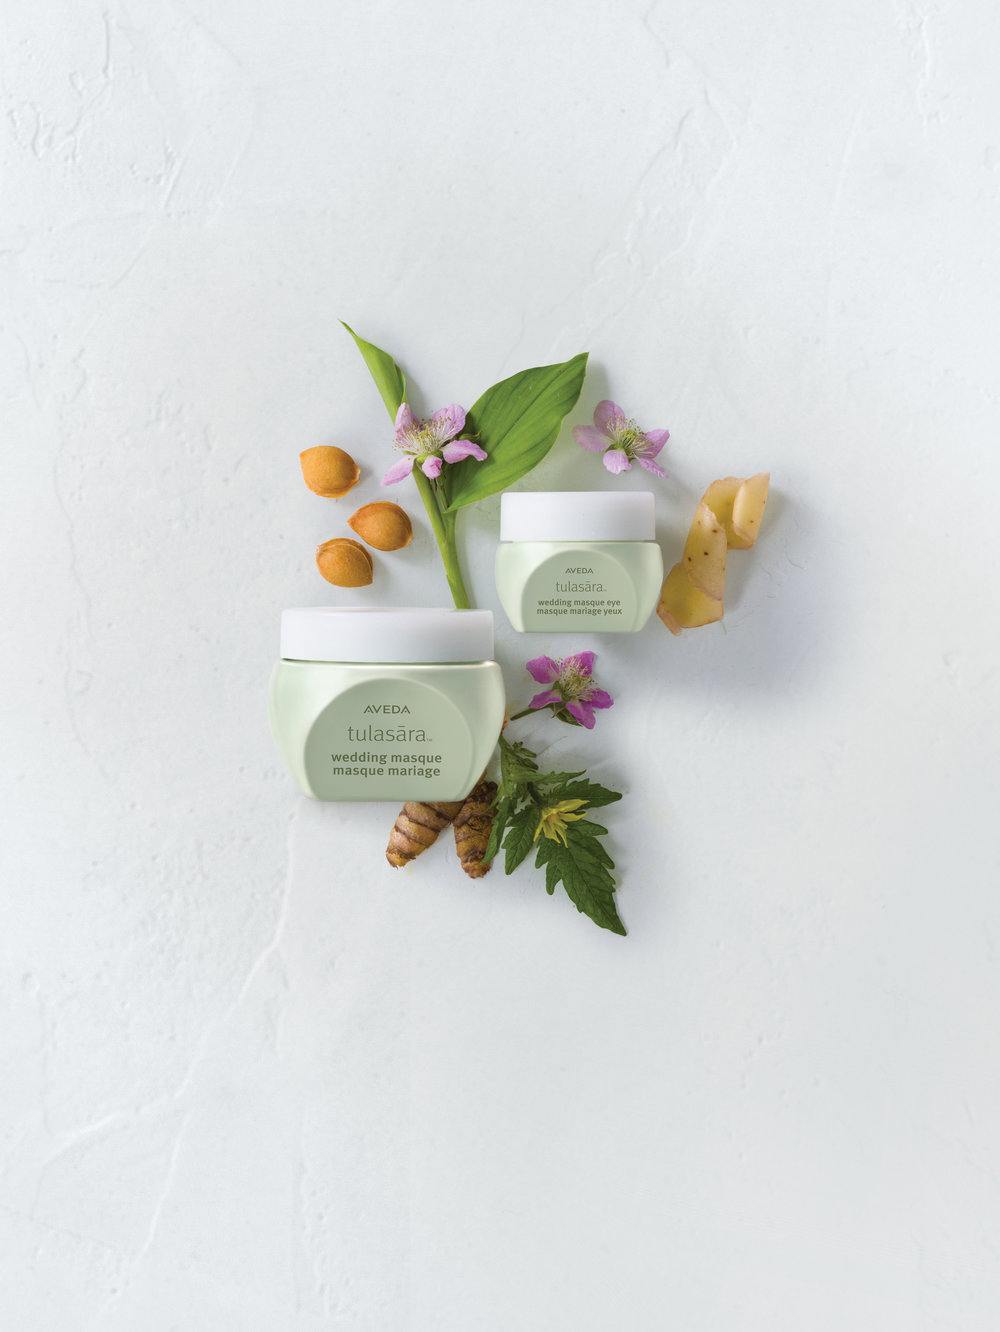 new Aveda Wedding Day Skin products. - COME IN AND TRY THE OVERNIGHT MASQUES...BEAUTIFUL...